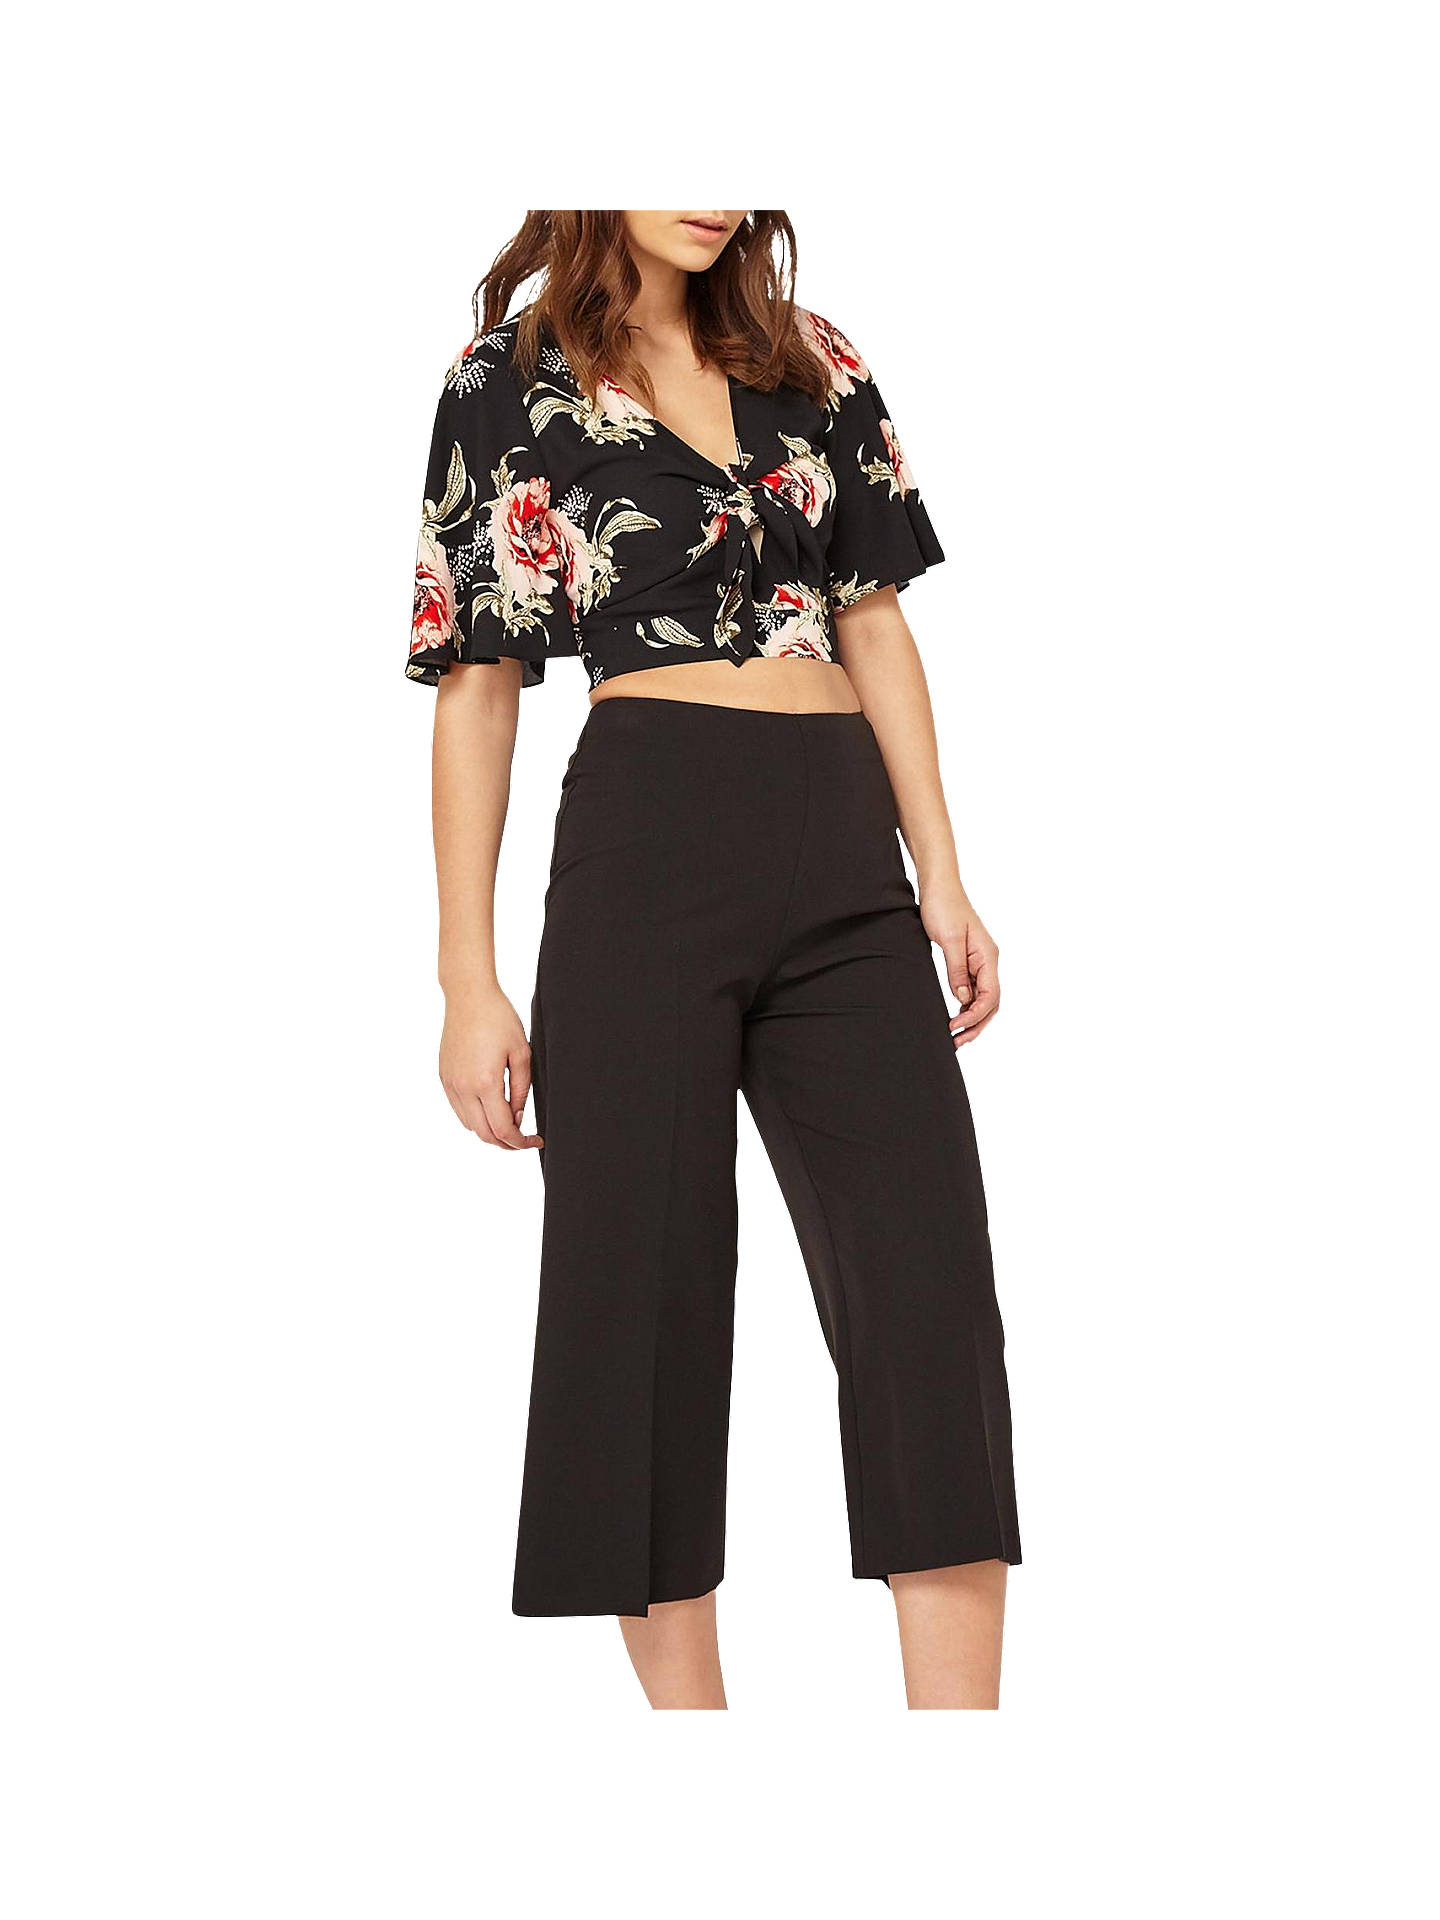 Miss Selfridge Cropped Wide Leg Trousers, Black at John Lewis & Partners